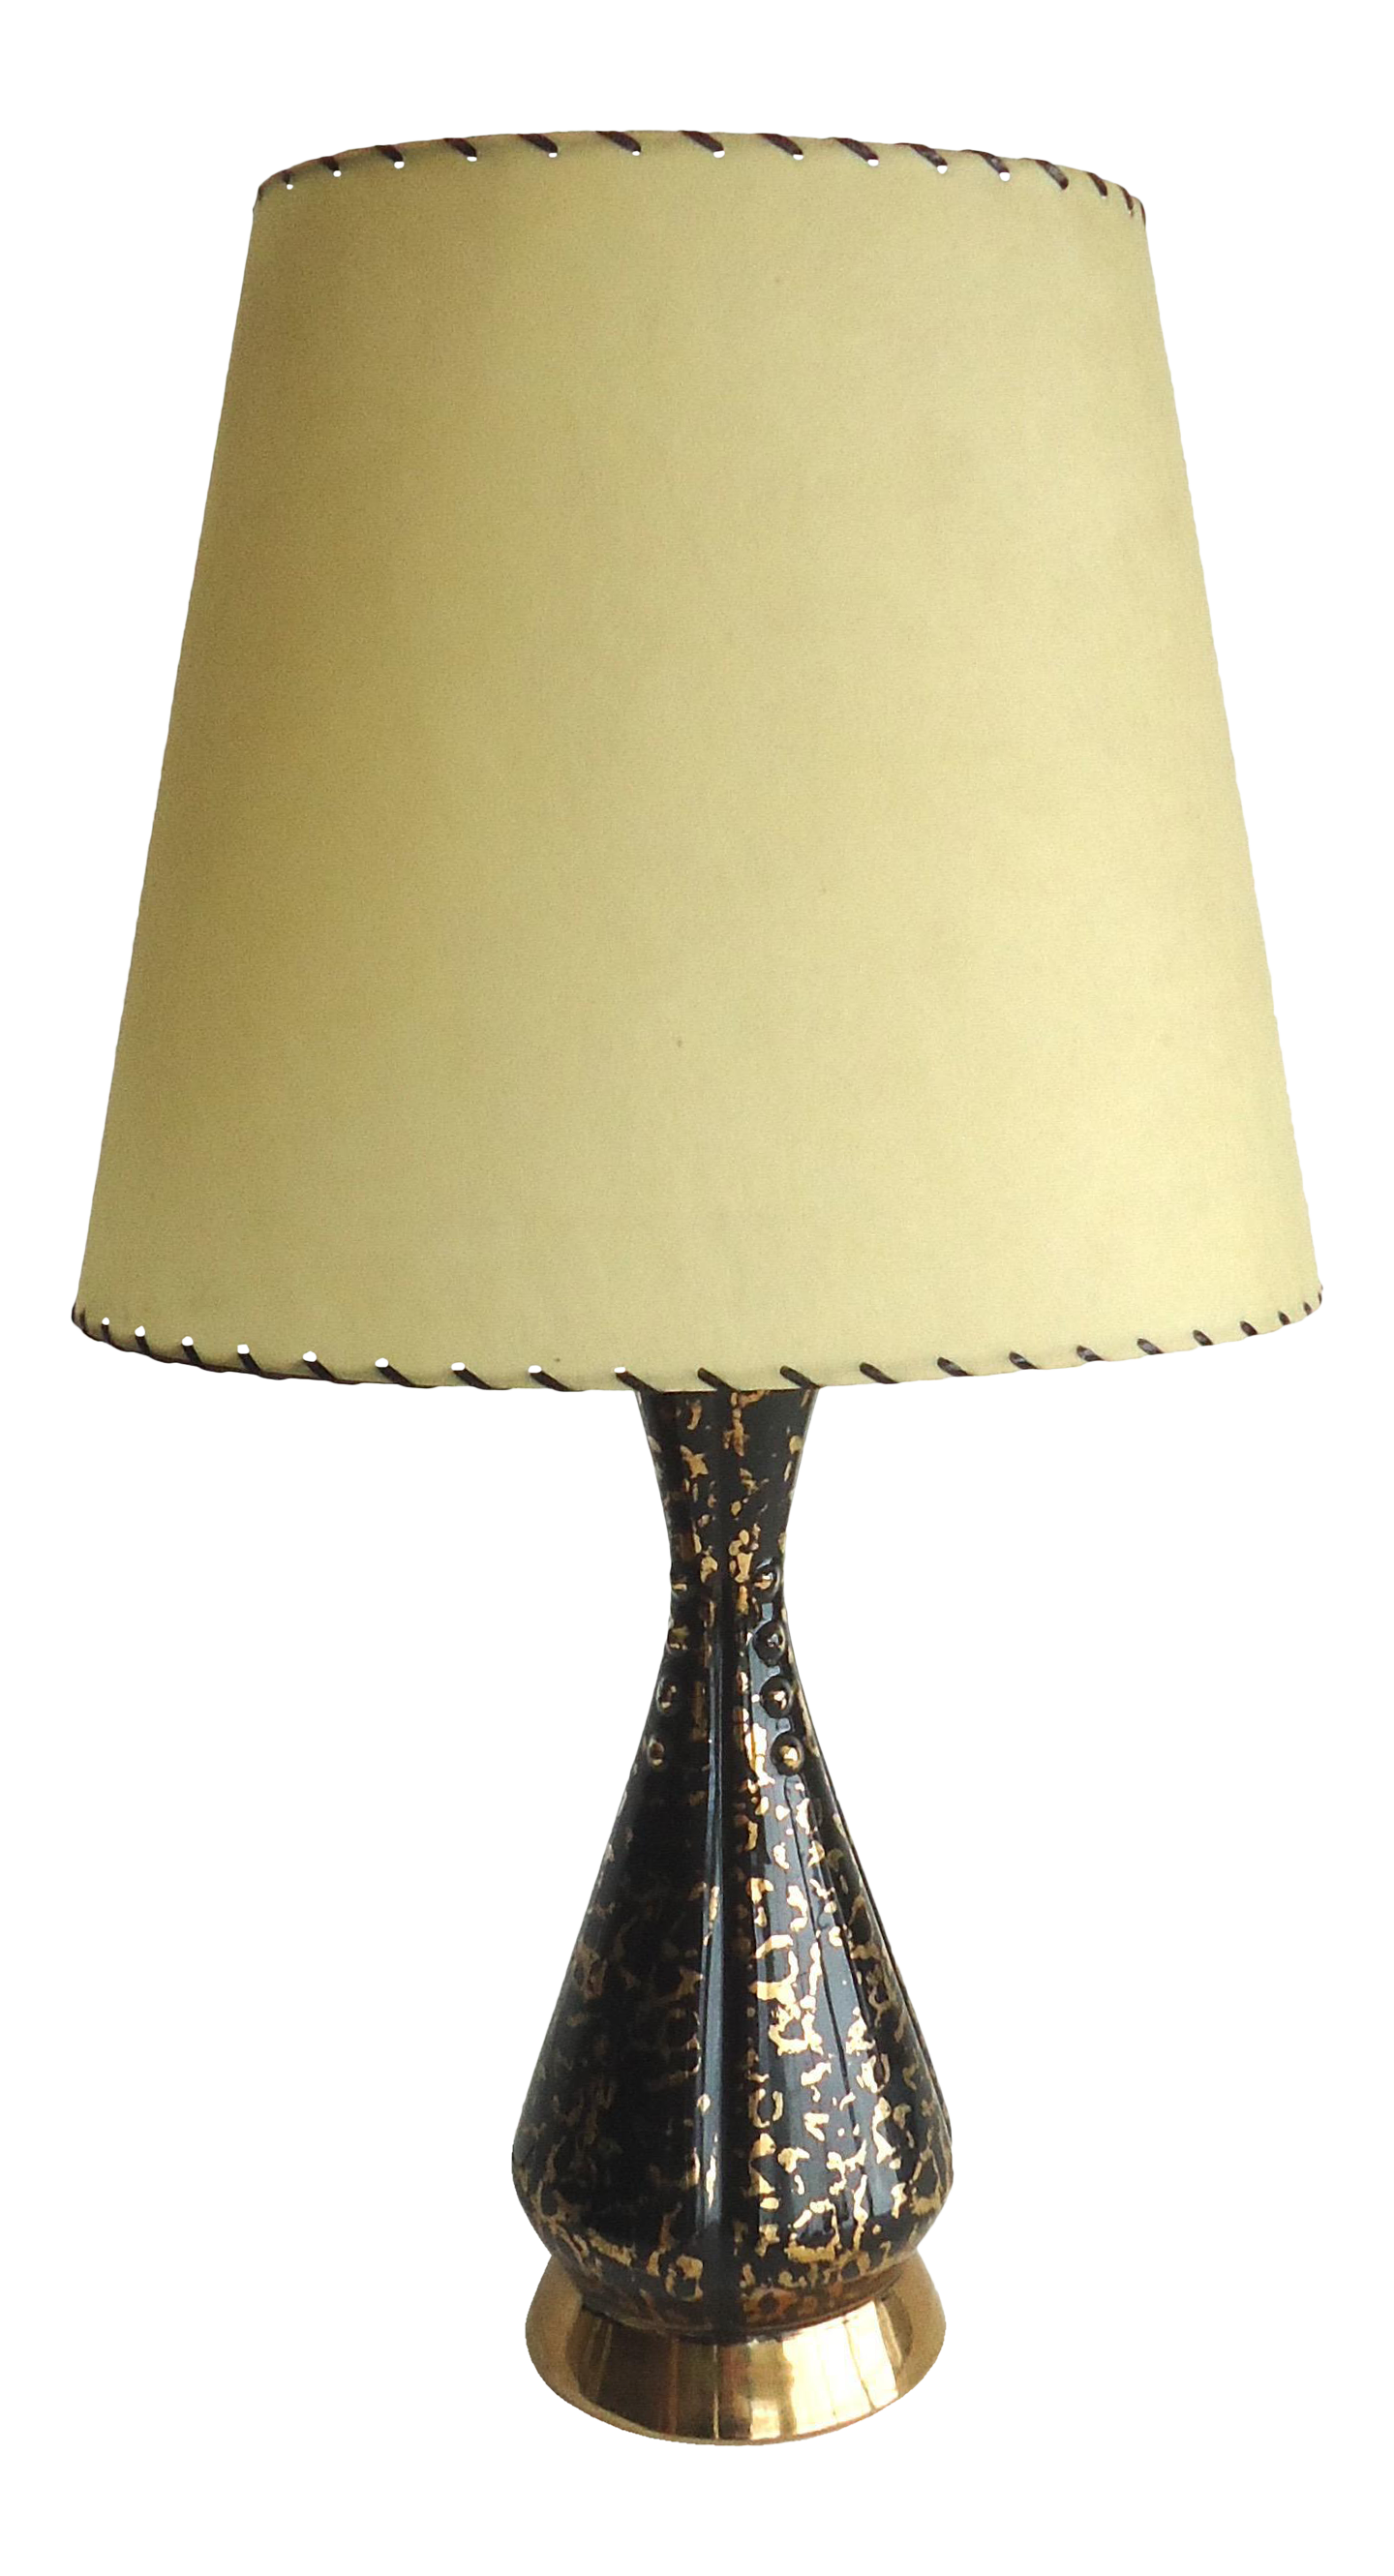 Mid Century Black U0026 Gold Table Lamp With Fiberglass Shade